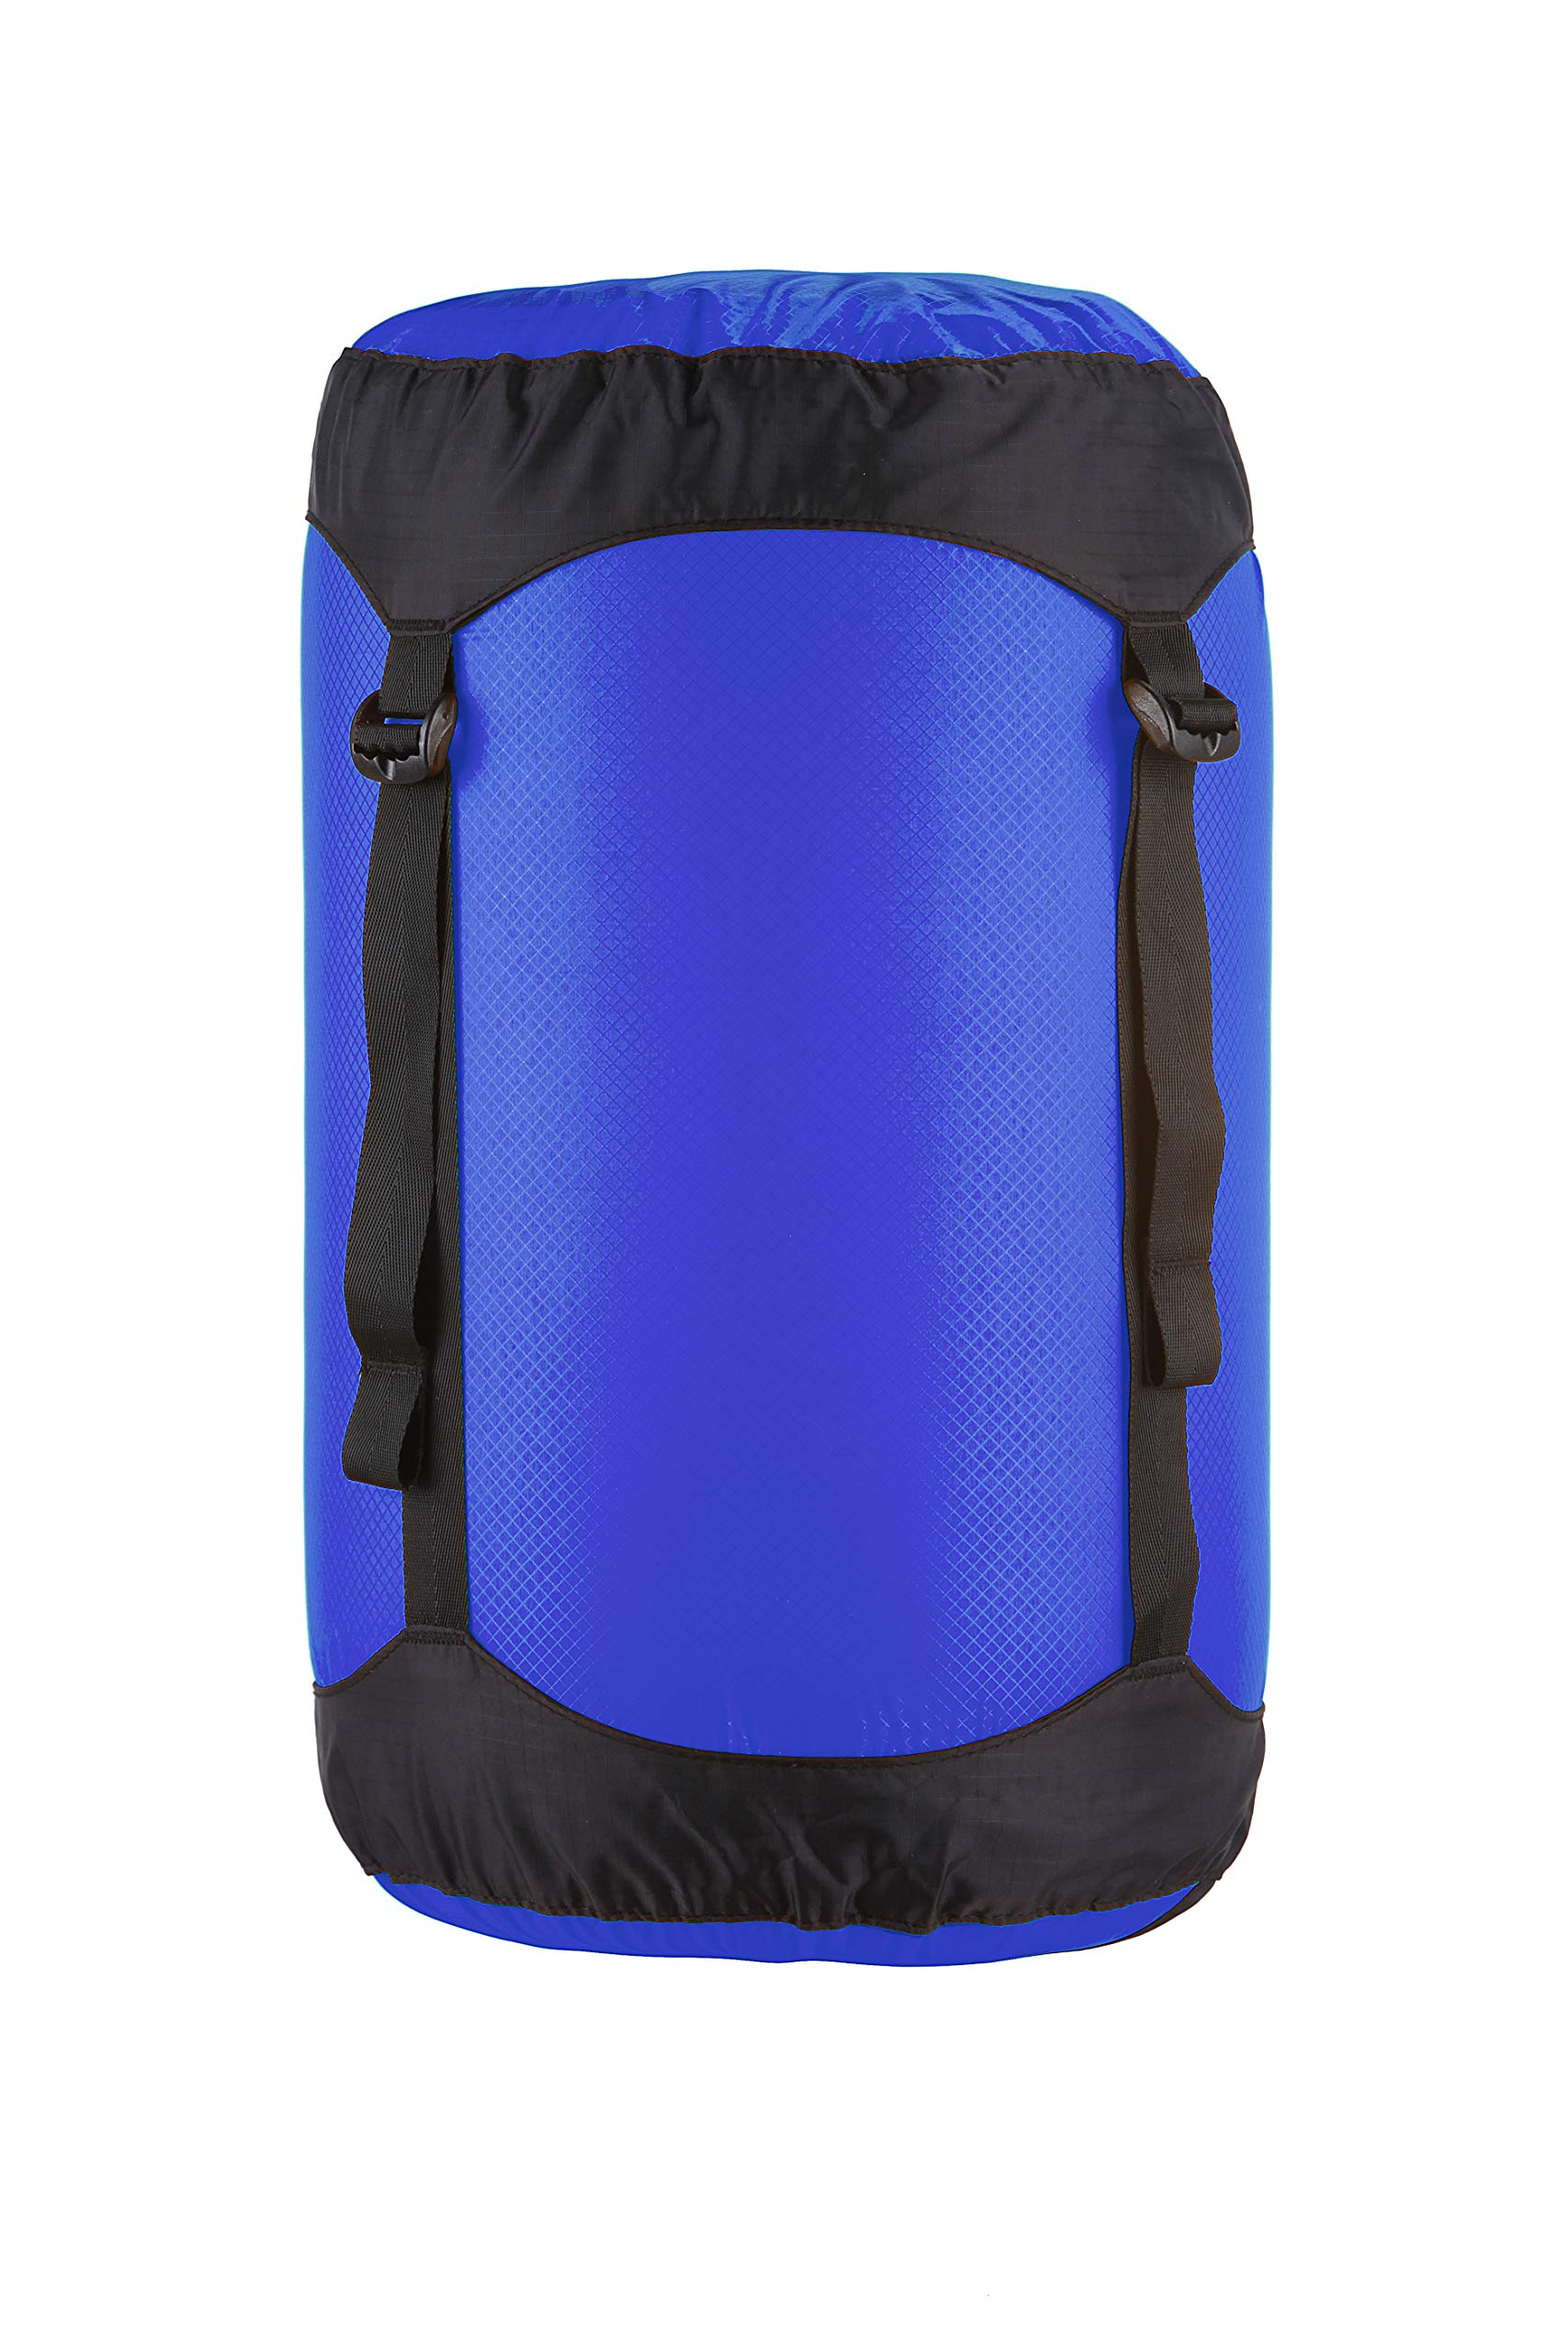 Sea to Summit Ultra-SIL Compression Sack, Royal Blue, 30 Liter by Sea to Summit